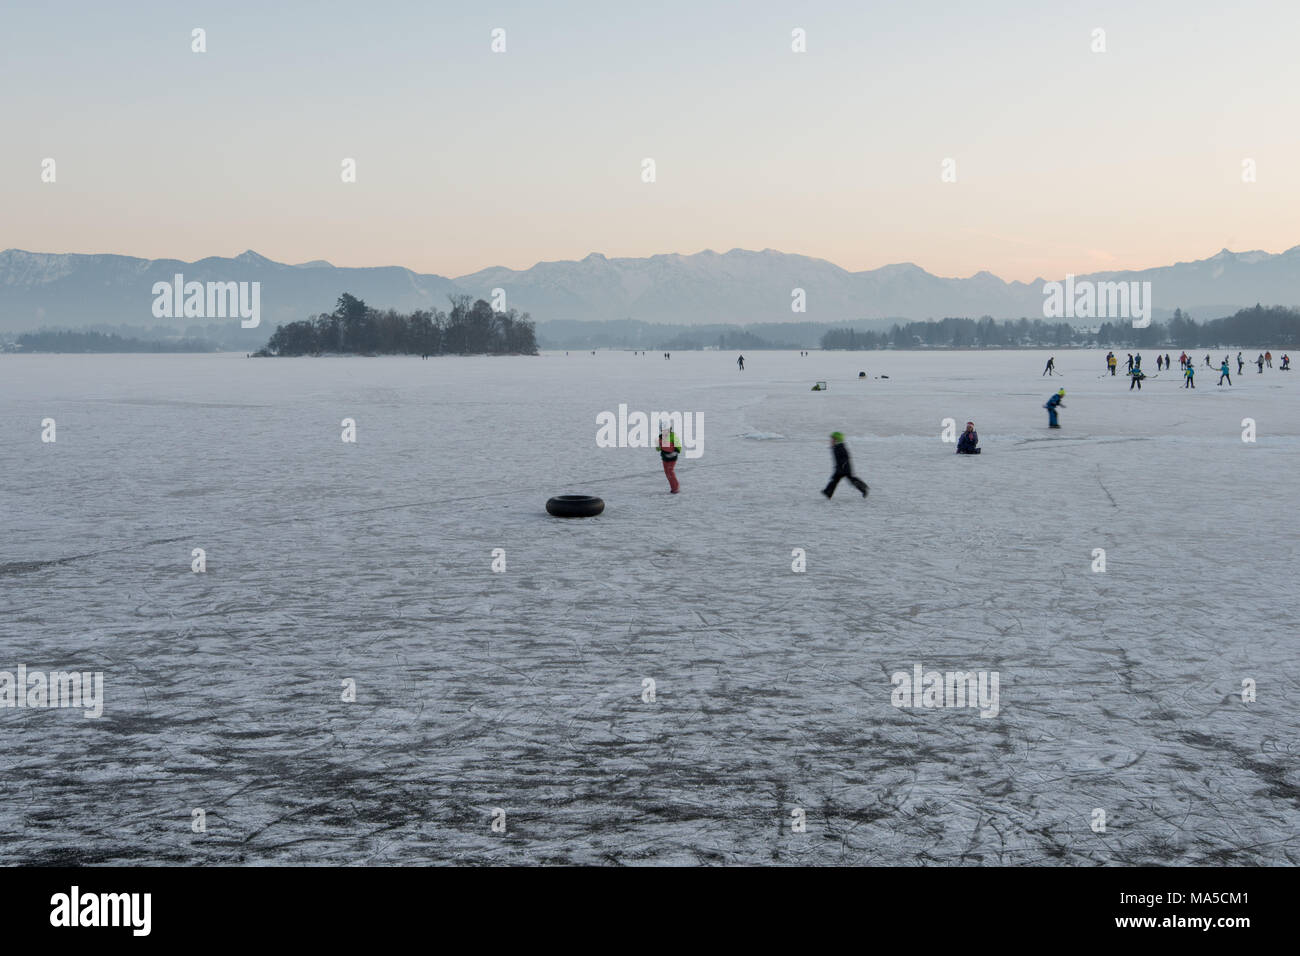 Children play on the frozen Staffelsee, ice hockey is played in the background - Stock Image